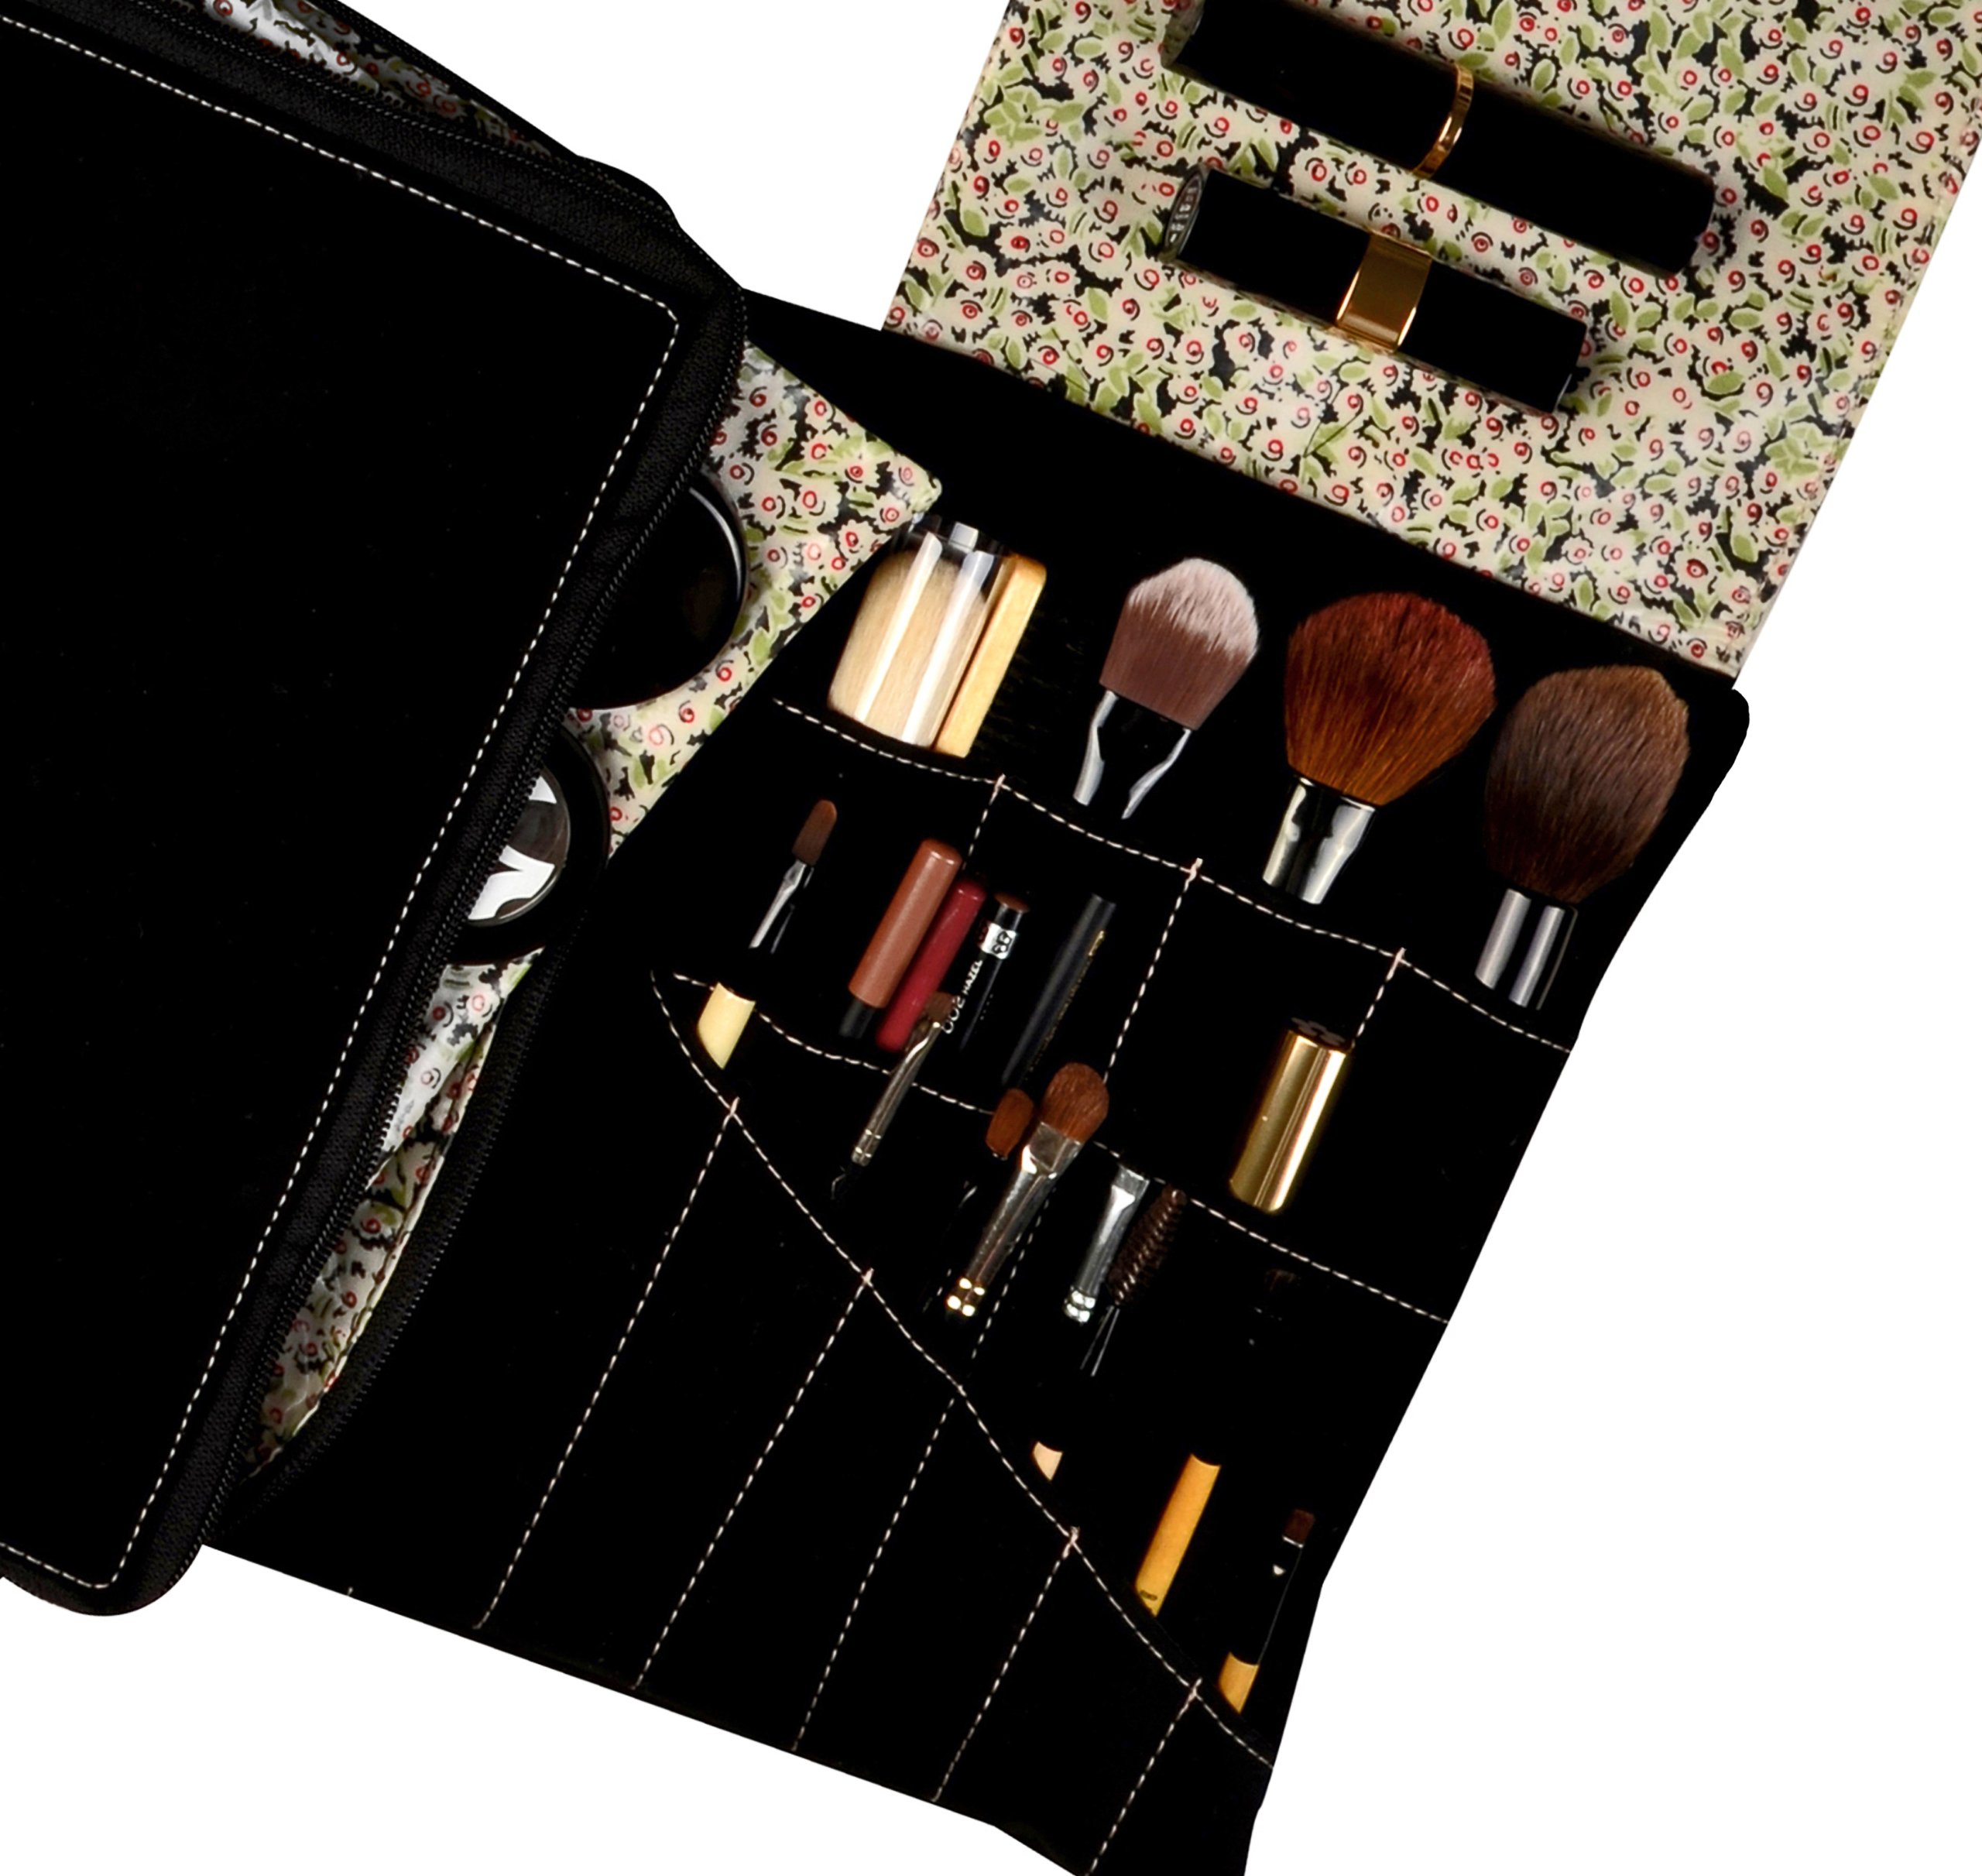 Hold Me Bag - ''Dear Darla'' - Makeup & Brush Organizer by Hold Me Bag (Image #5)